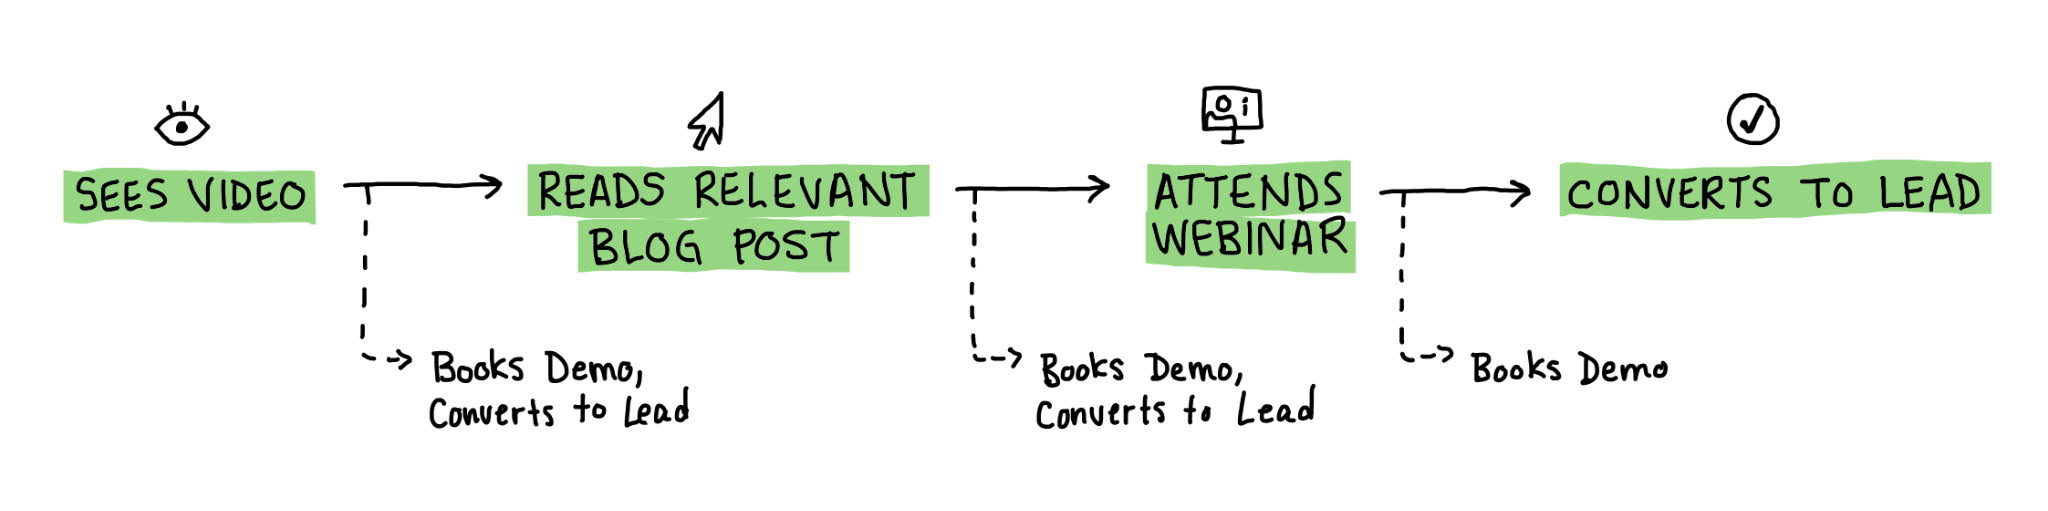 """A flow chart that outlines the strategy for the Solunoverse campaign. The flow from left to right is: """"Sees Video"""", then """"Reads Relevant Blog Post"""", then """"Attends Webinar"""", then """"Converts to Lead"""". In between each of the segments, secondary arrows split off that read """"Books Demo; Converts to Lead""""."""